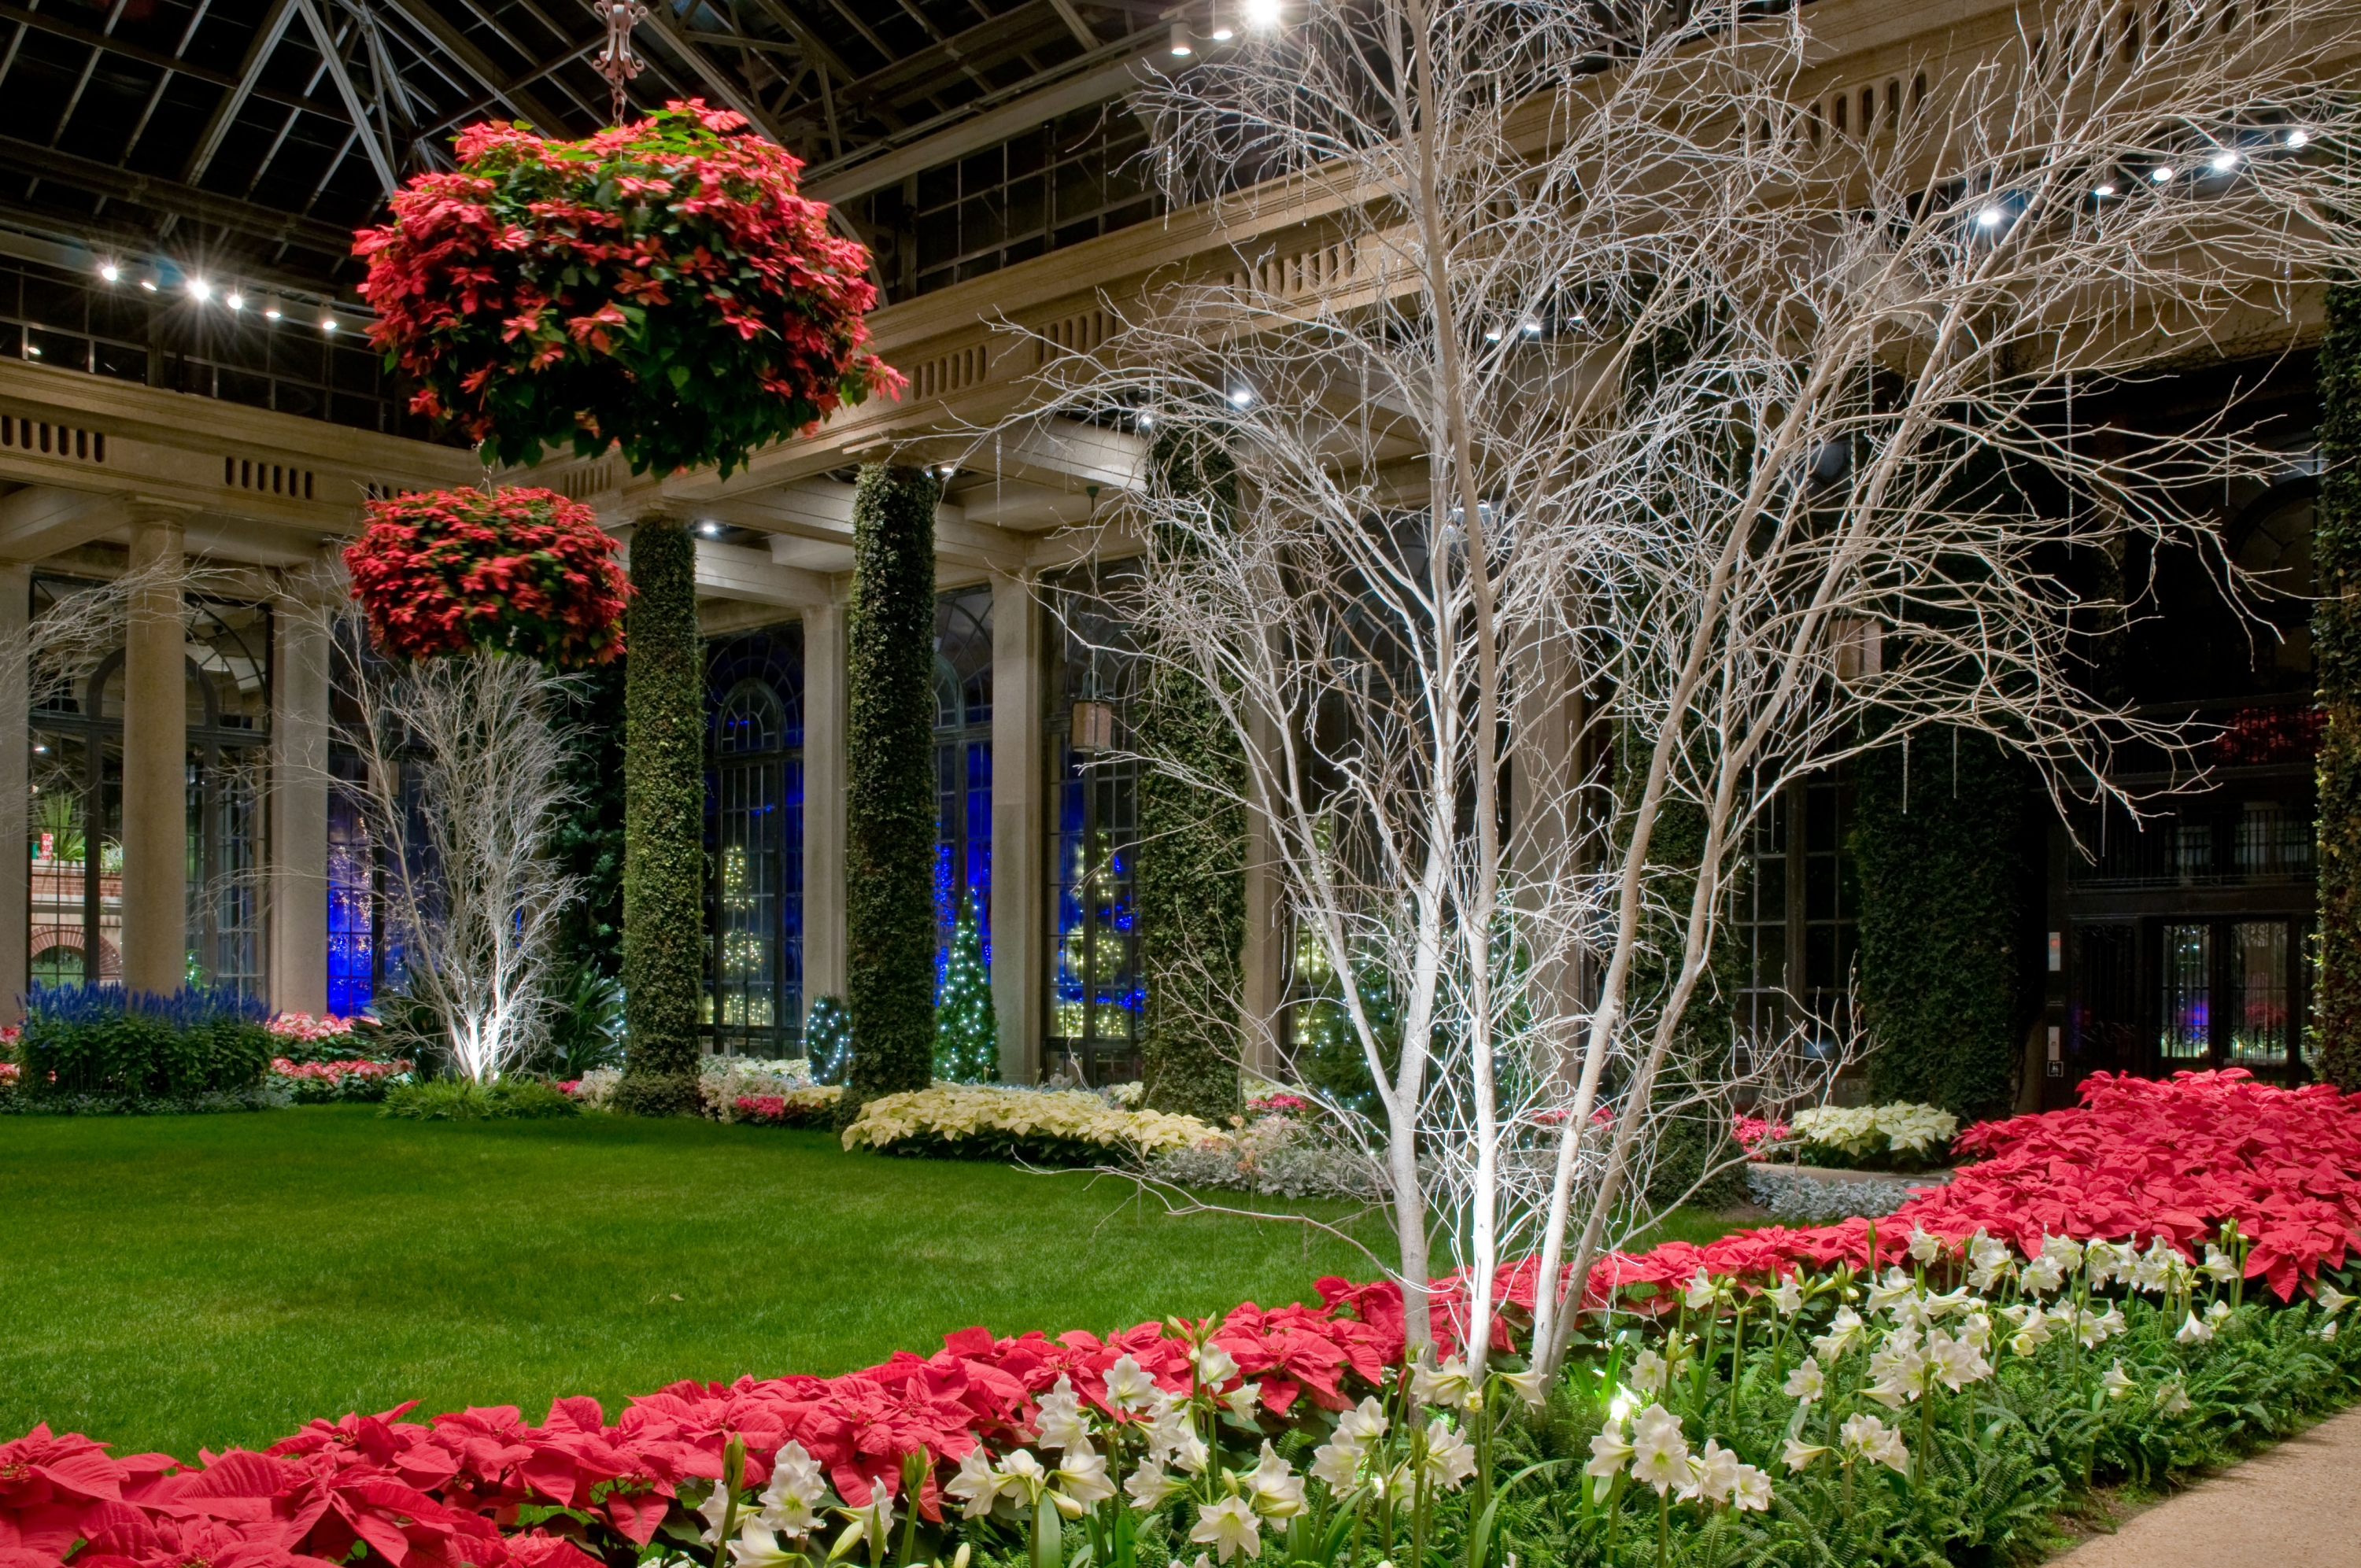 Poinsettia baskets on display in Longwood's Conservatory during Christmas